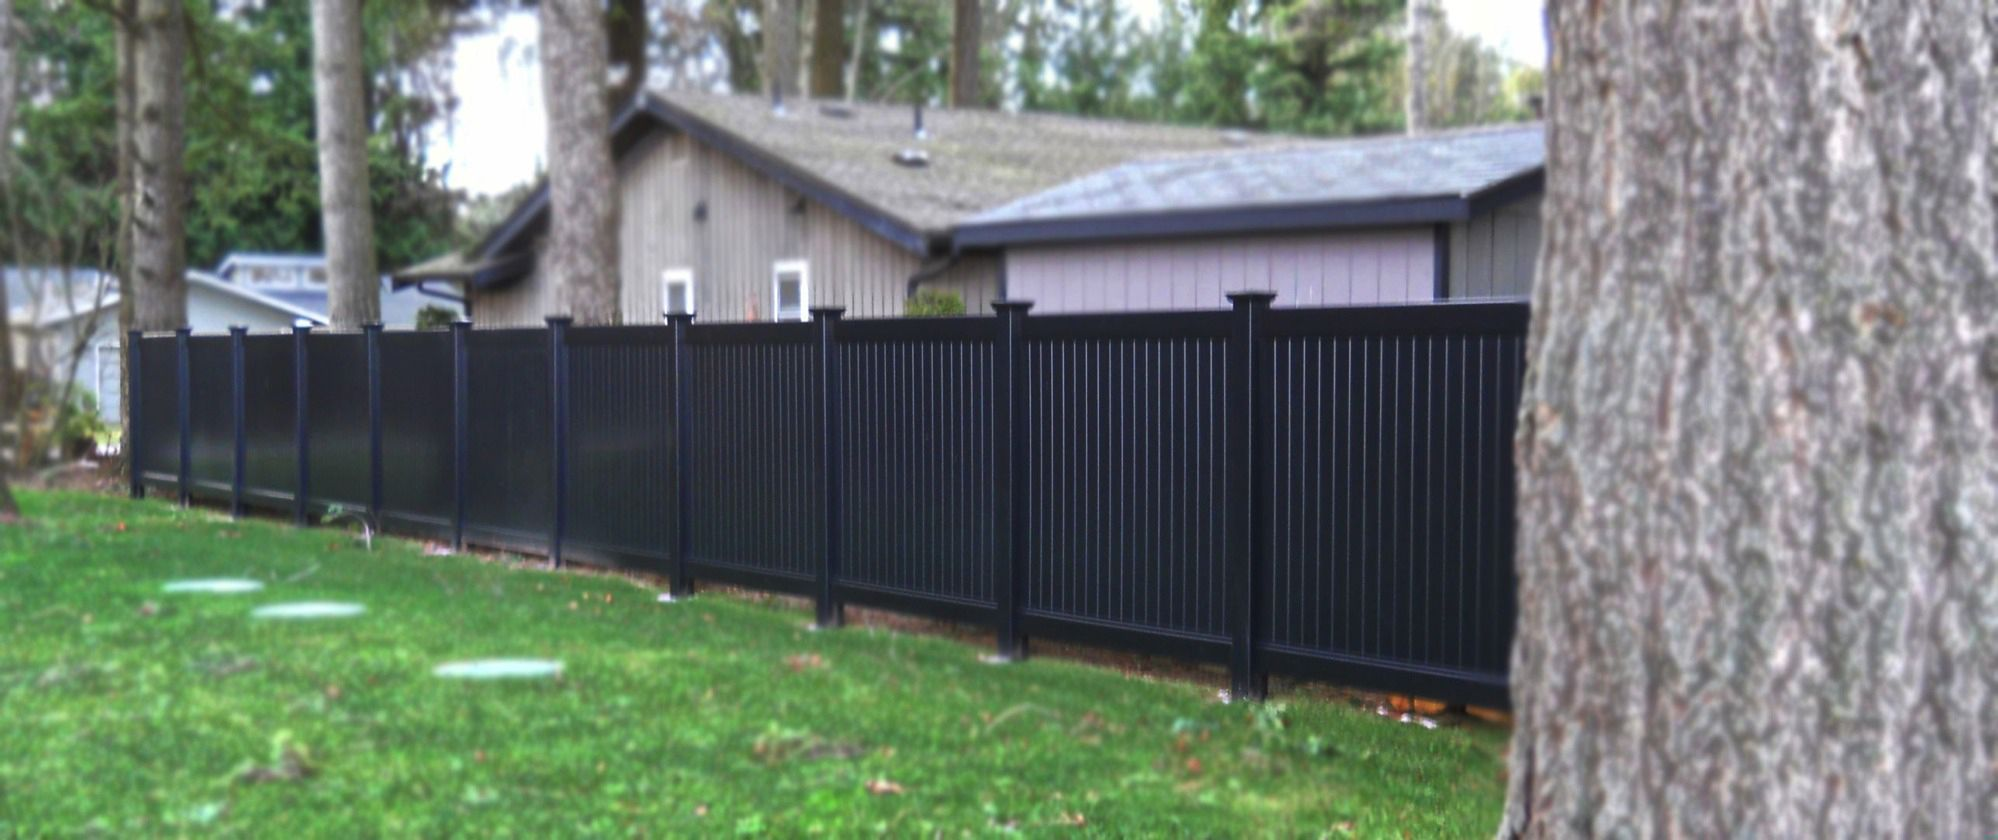 New wood plastic composite fencing wall uk wpc fencing railing new wood plastic composite fencing wall uk baanklon Gallery